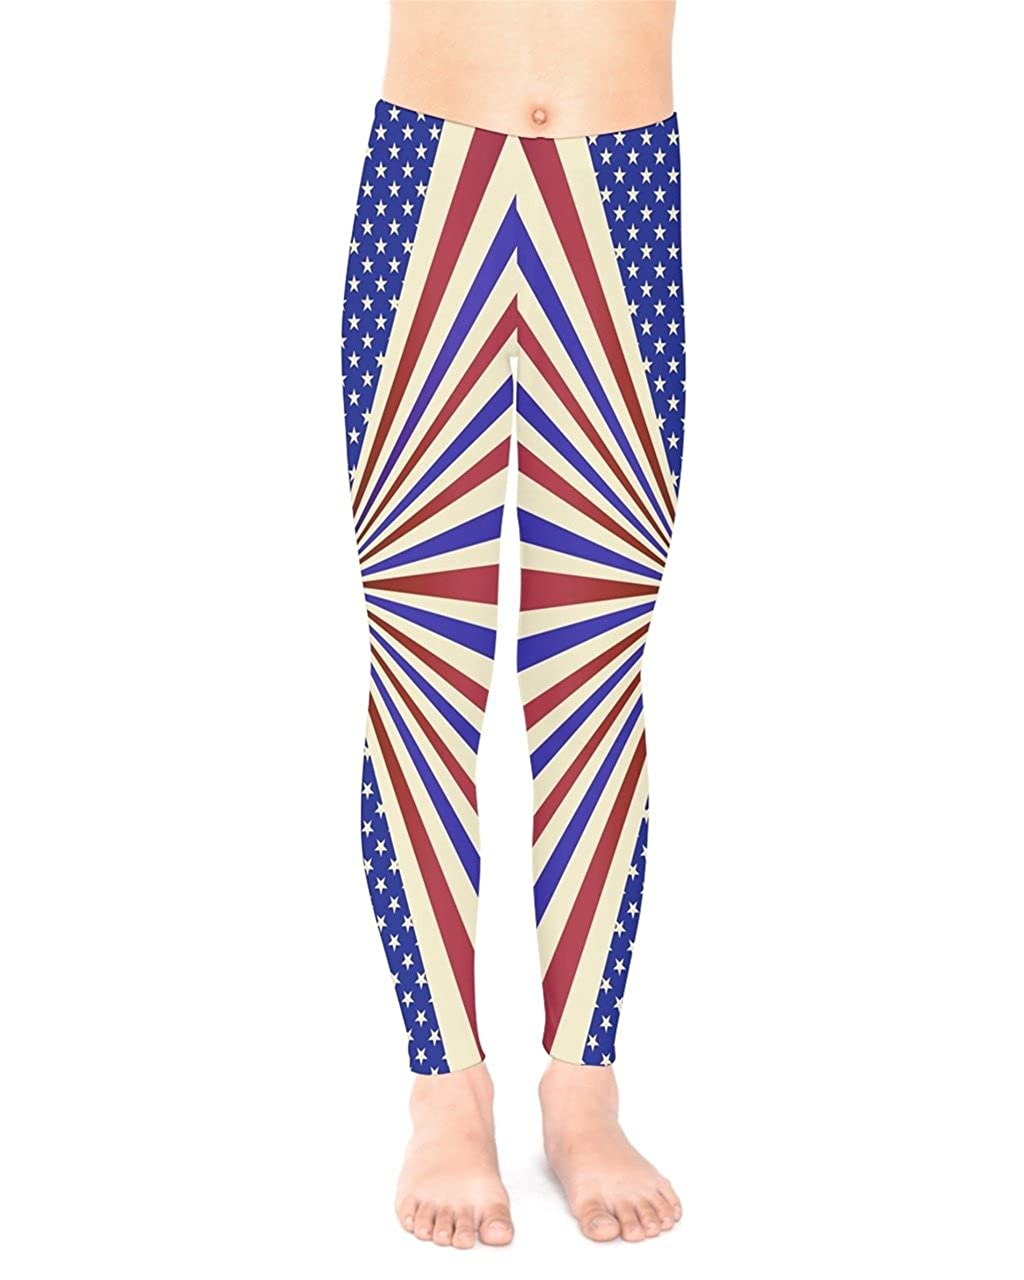 PattyCandy Unisex Vintage Patriotic USA Flag Star Stripes Waves Kids Leggings Stretchy Tights Size:2-16